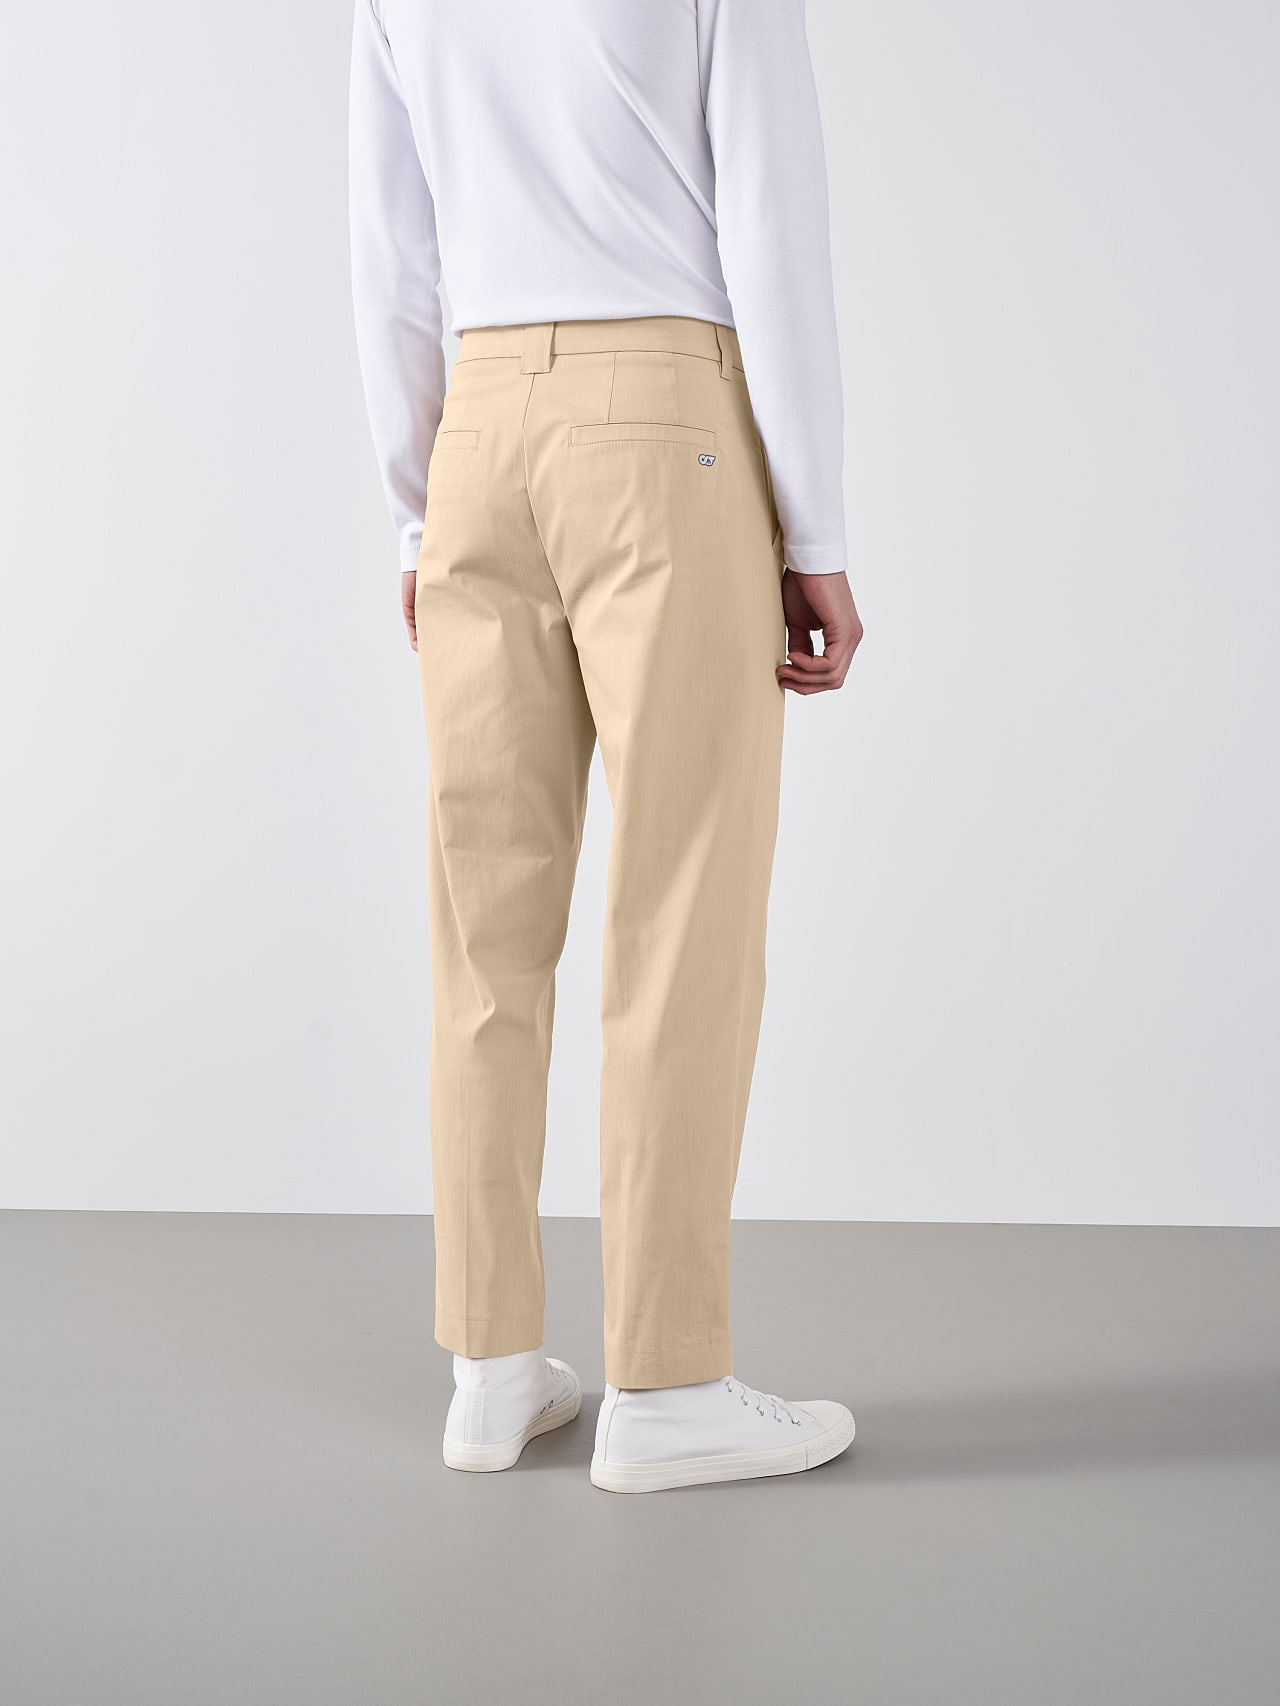 PLAIZ V2.Y5.01 Water-Repellent Cotton-Stretch Chino Sand Front Main Alpha Tauri